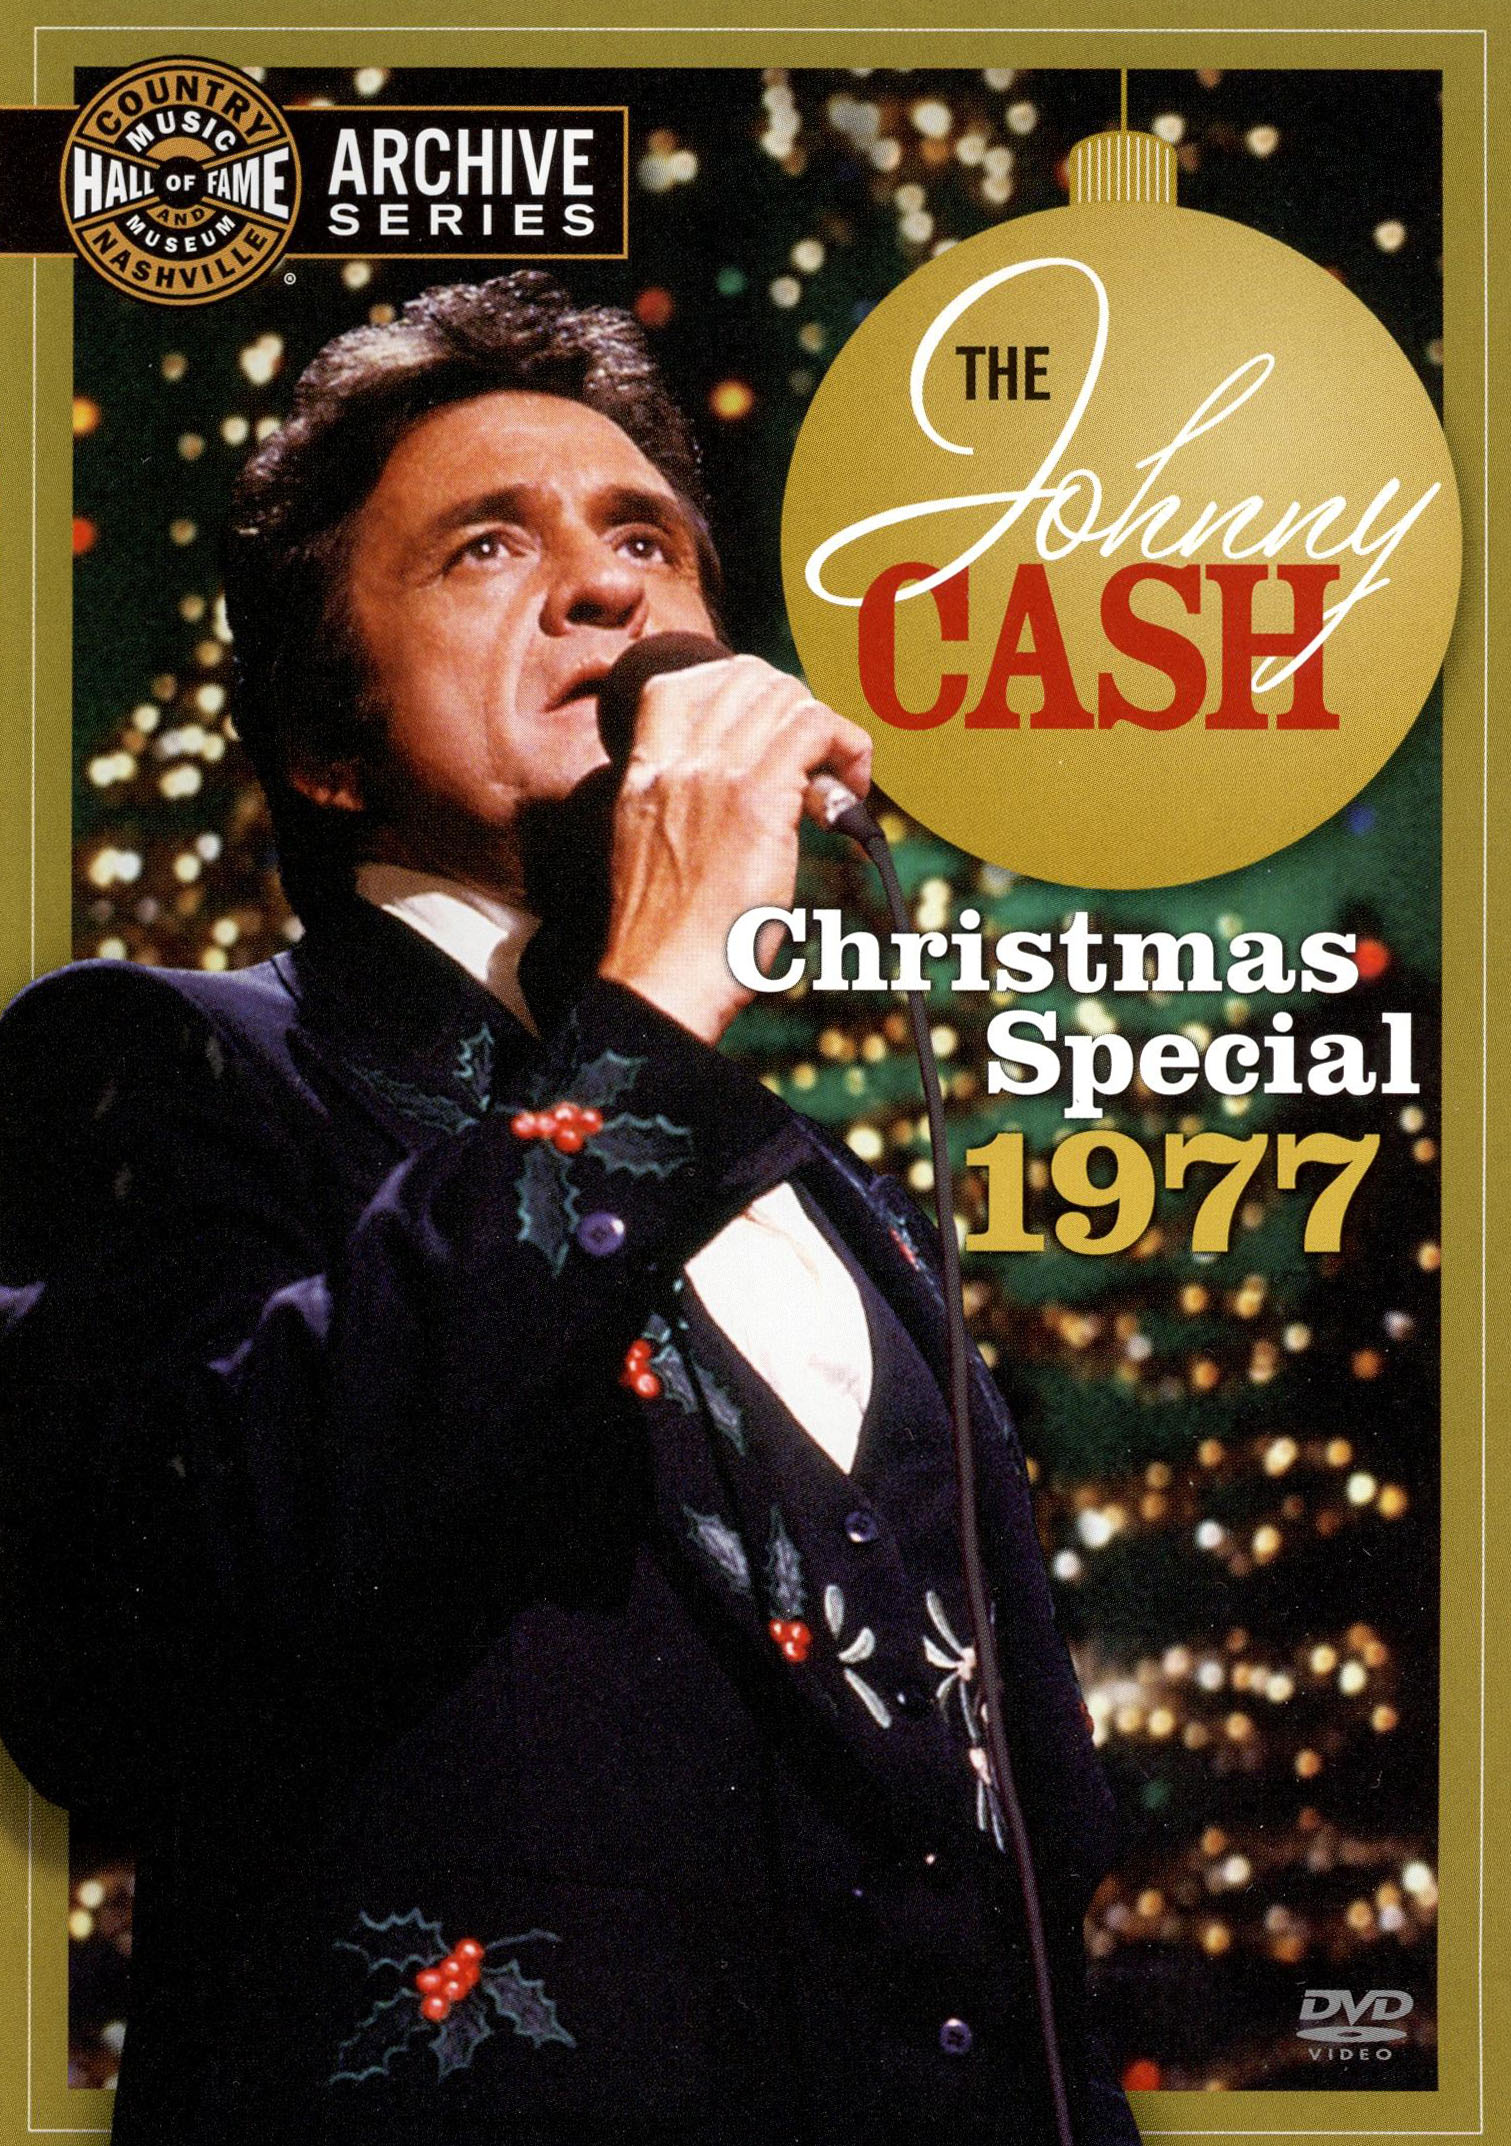 Johnny Cash Christmas Special 1977 (1977) - Walter C. Miller ...